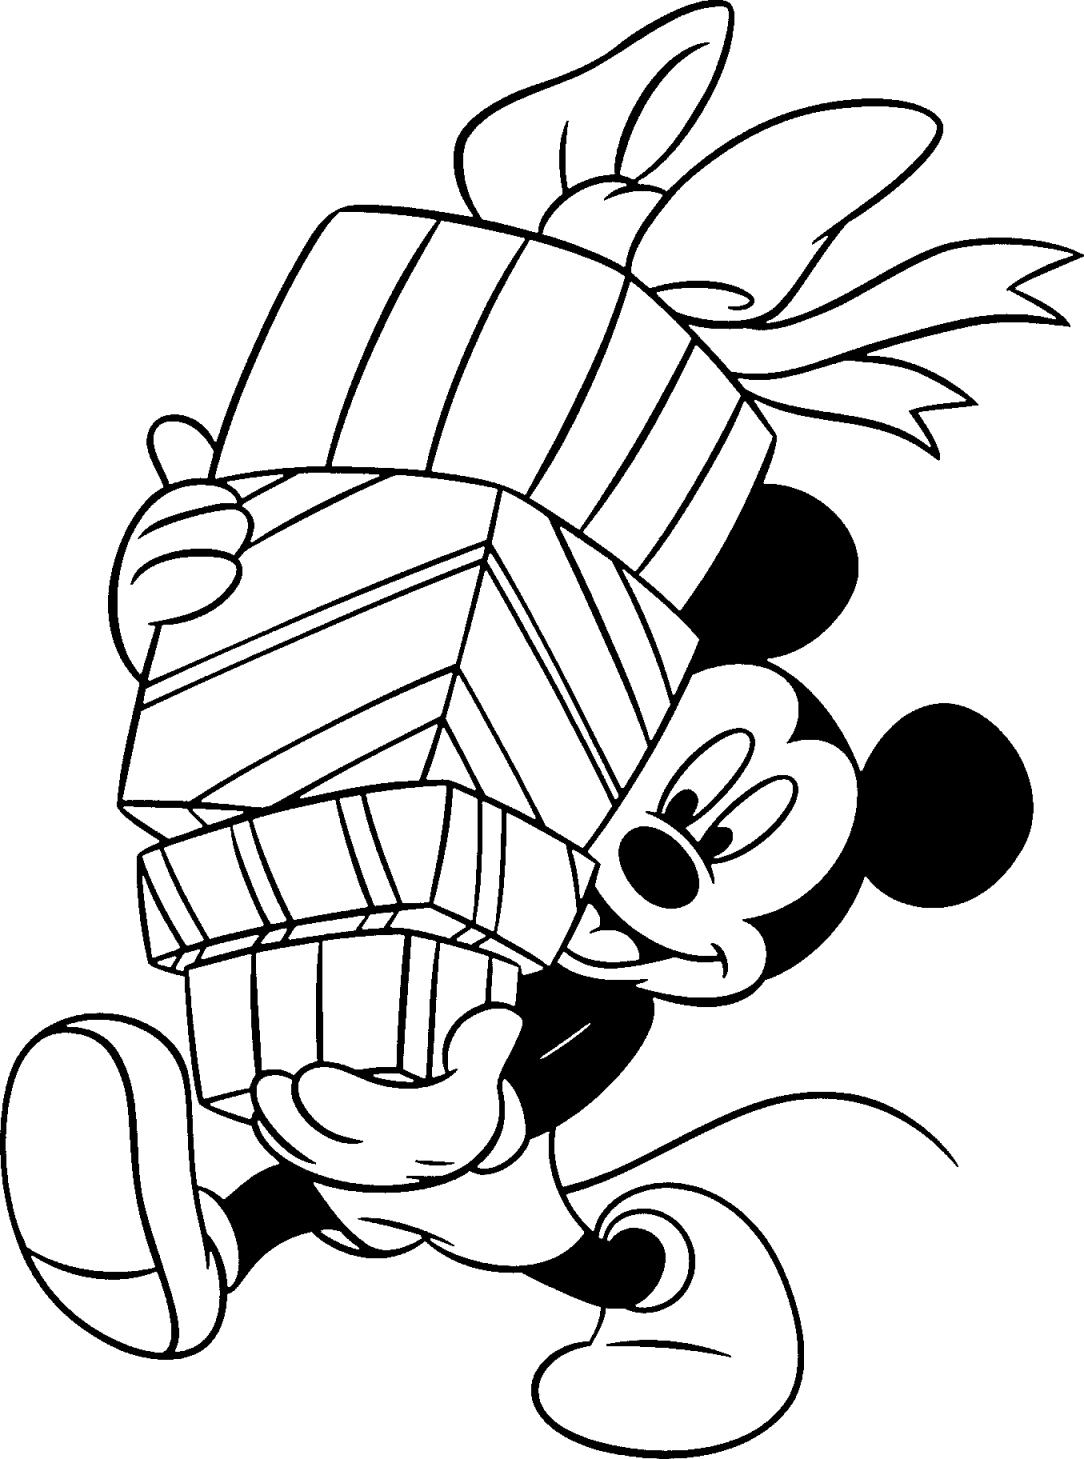 birthday mickey mouse coloring pages || PINTEREST birthday ...